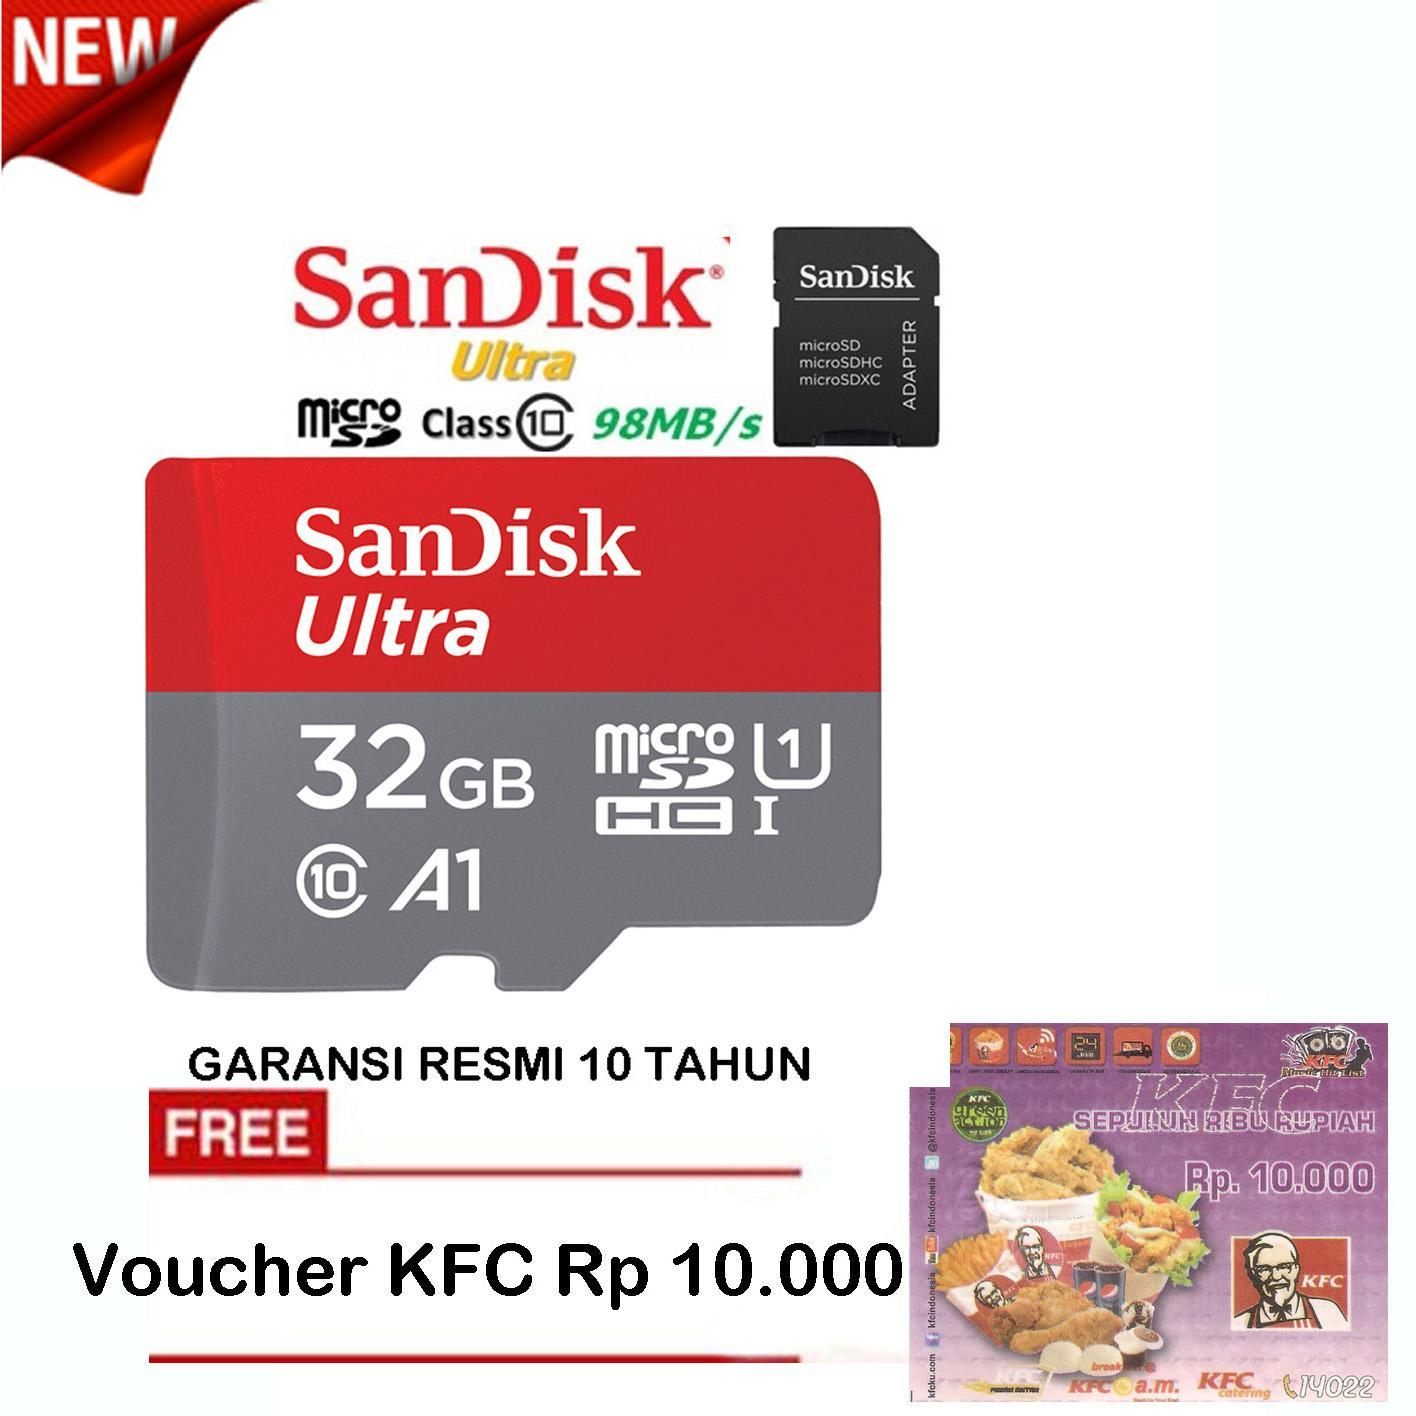 SanDisk Ultra MicroSDHC 98MB/s 32GB A1 Class 10 UHS-1 With Micro SDHC - SD Card Adapter - Red-Grey + Voucher KFC